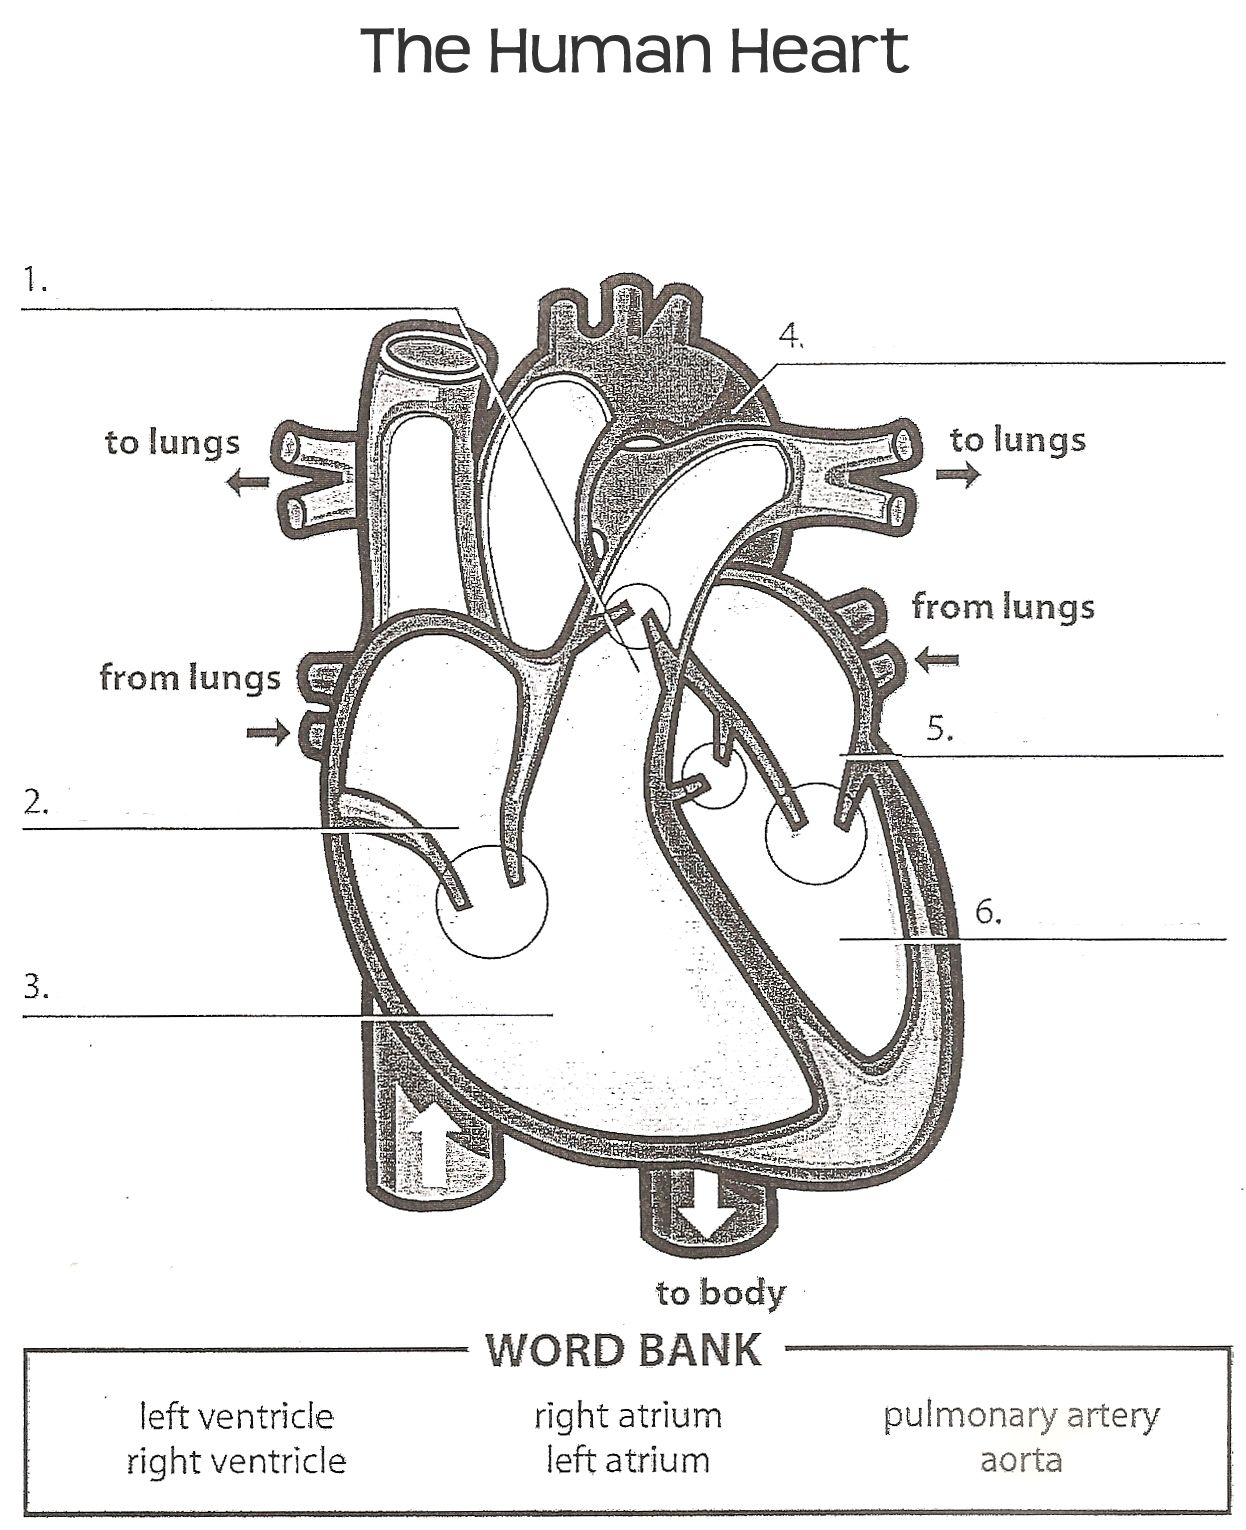 human heart worksheet | Science | Pinterest